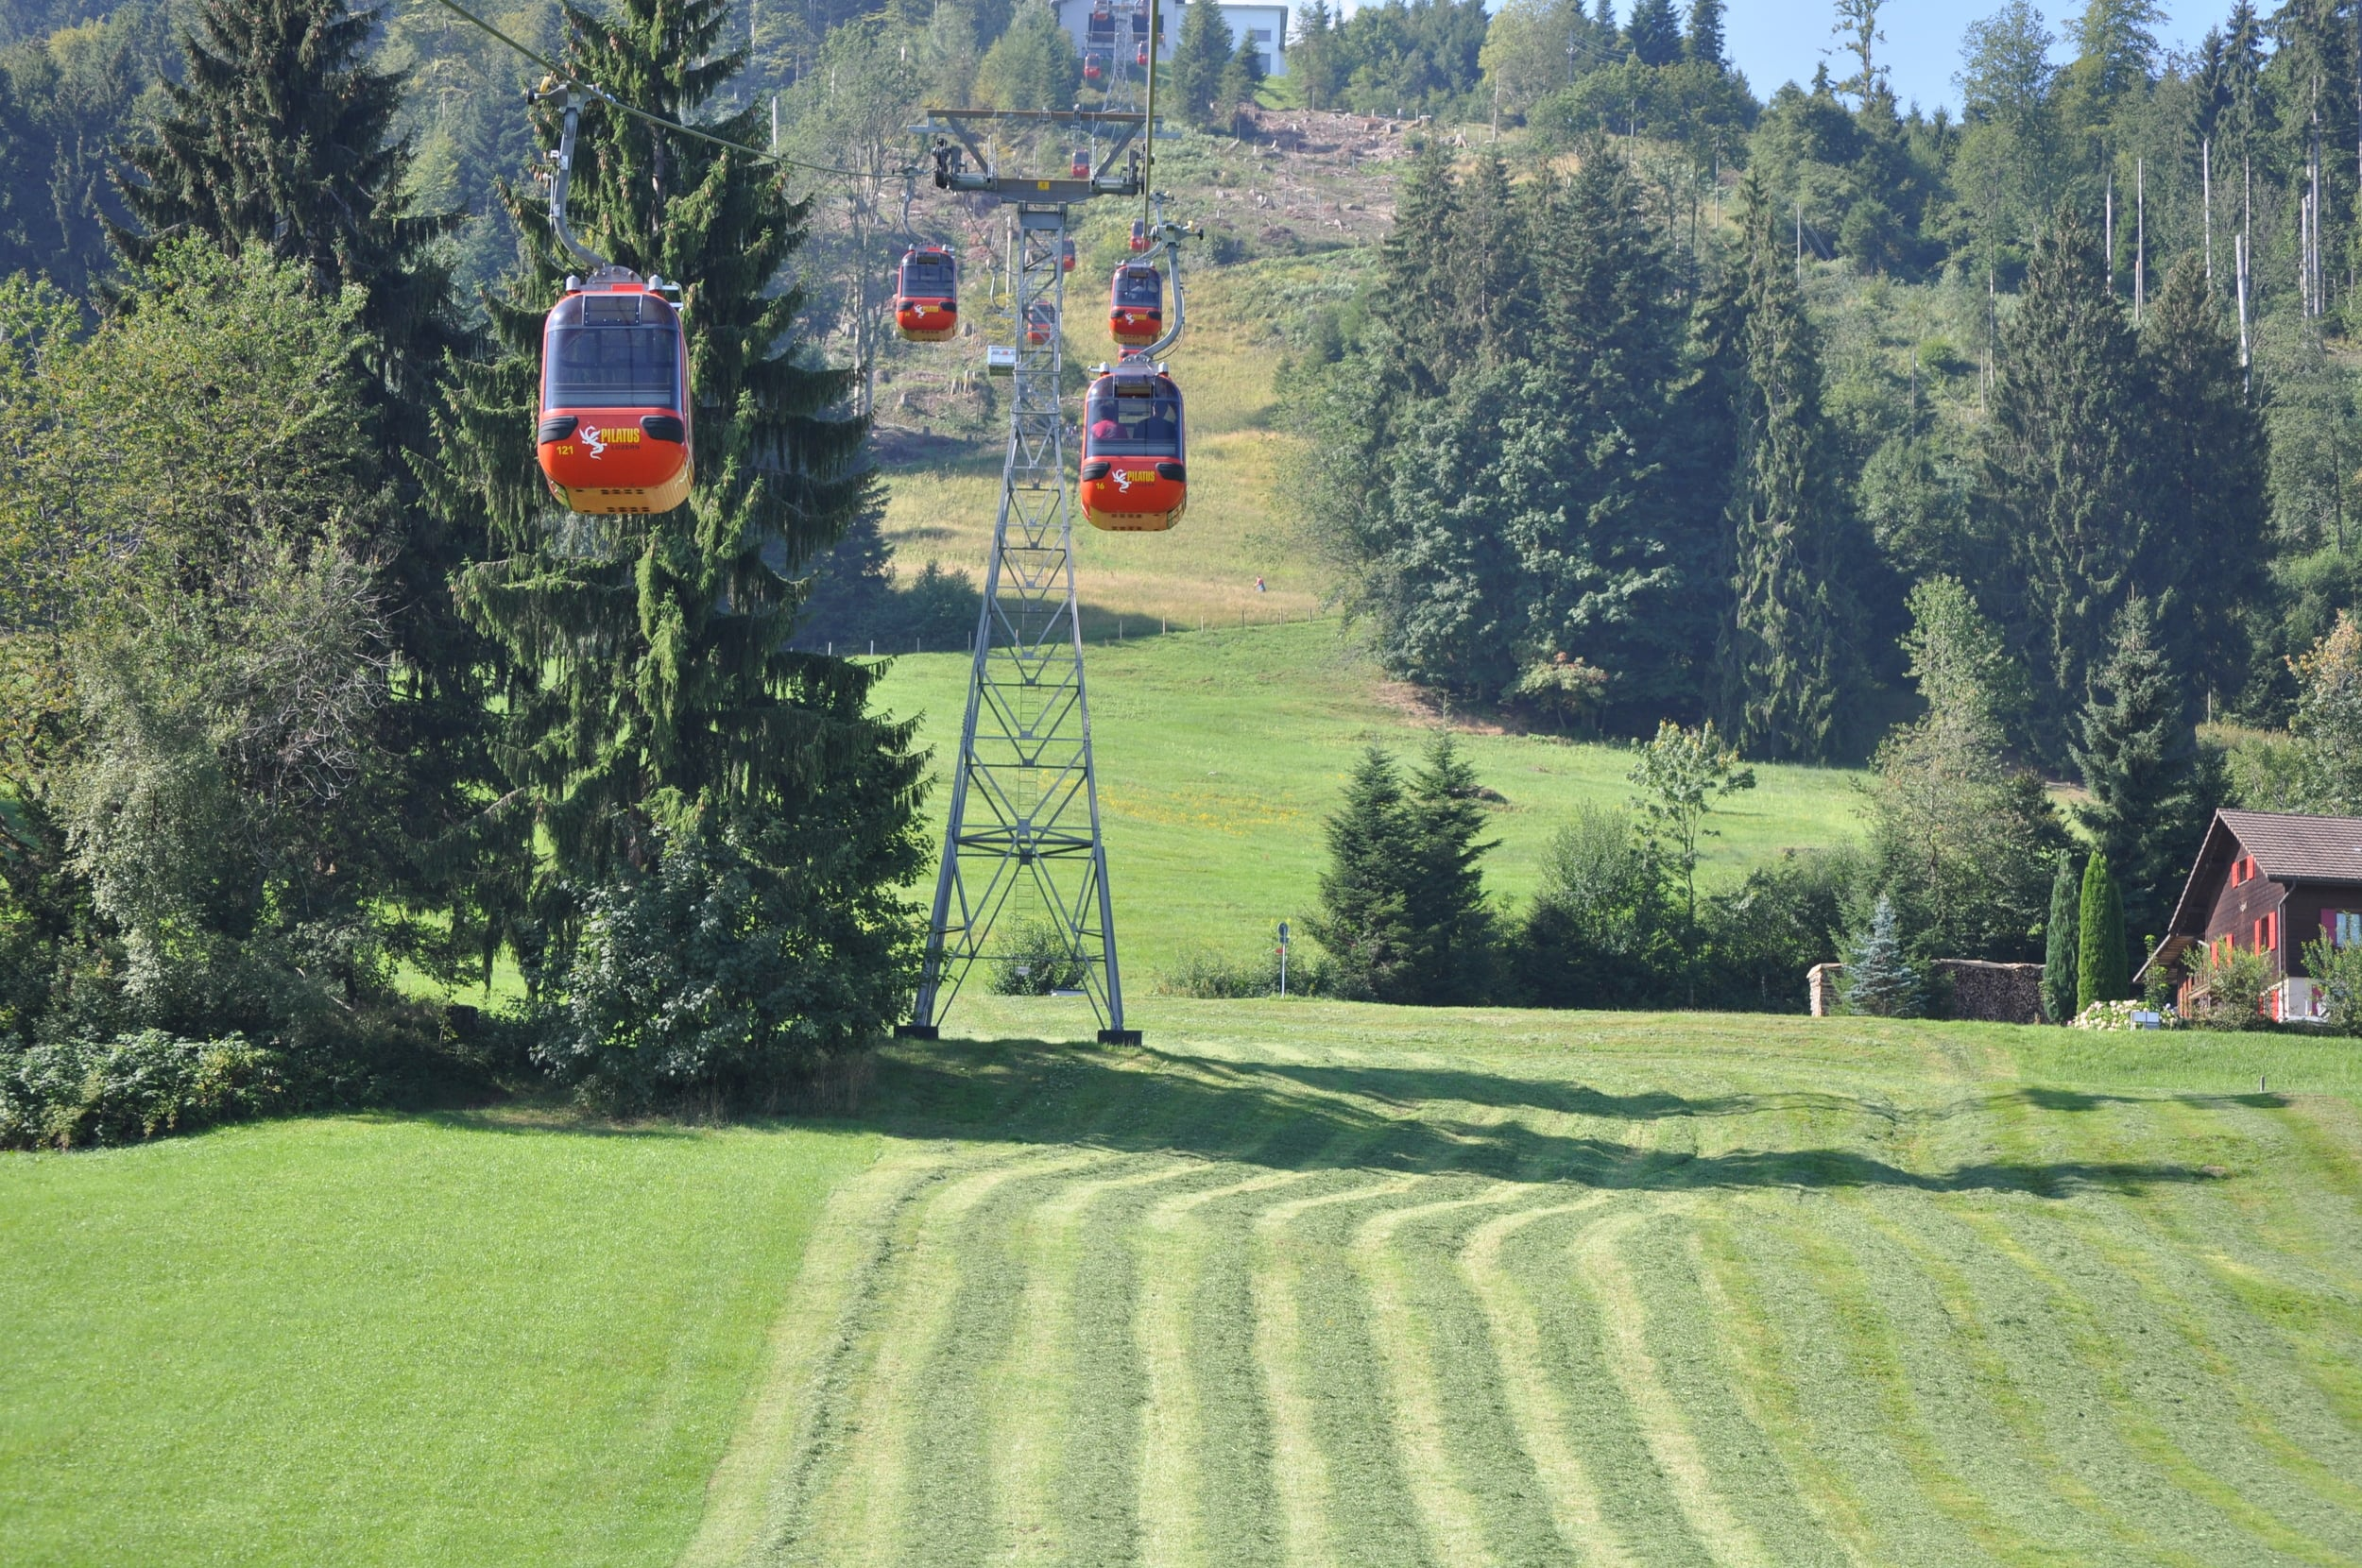 Going up to Mount Pilatus in cable cars. Photo: Pamy Rojas